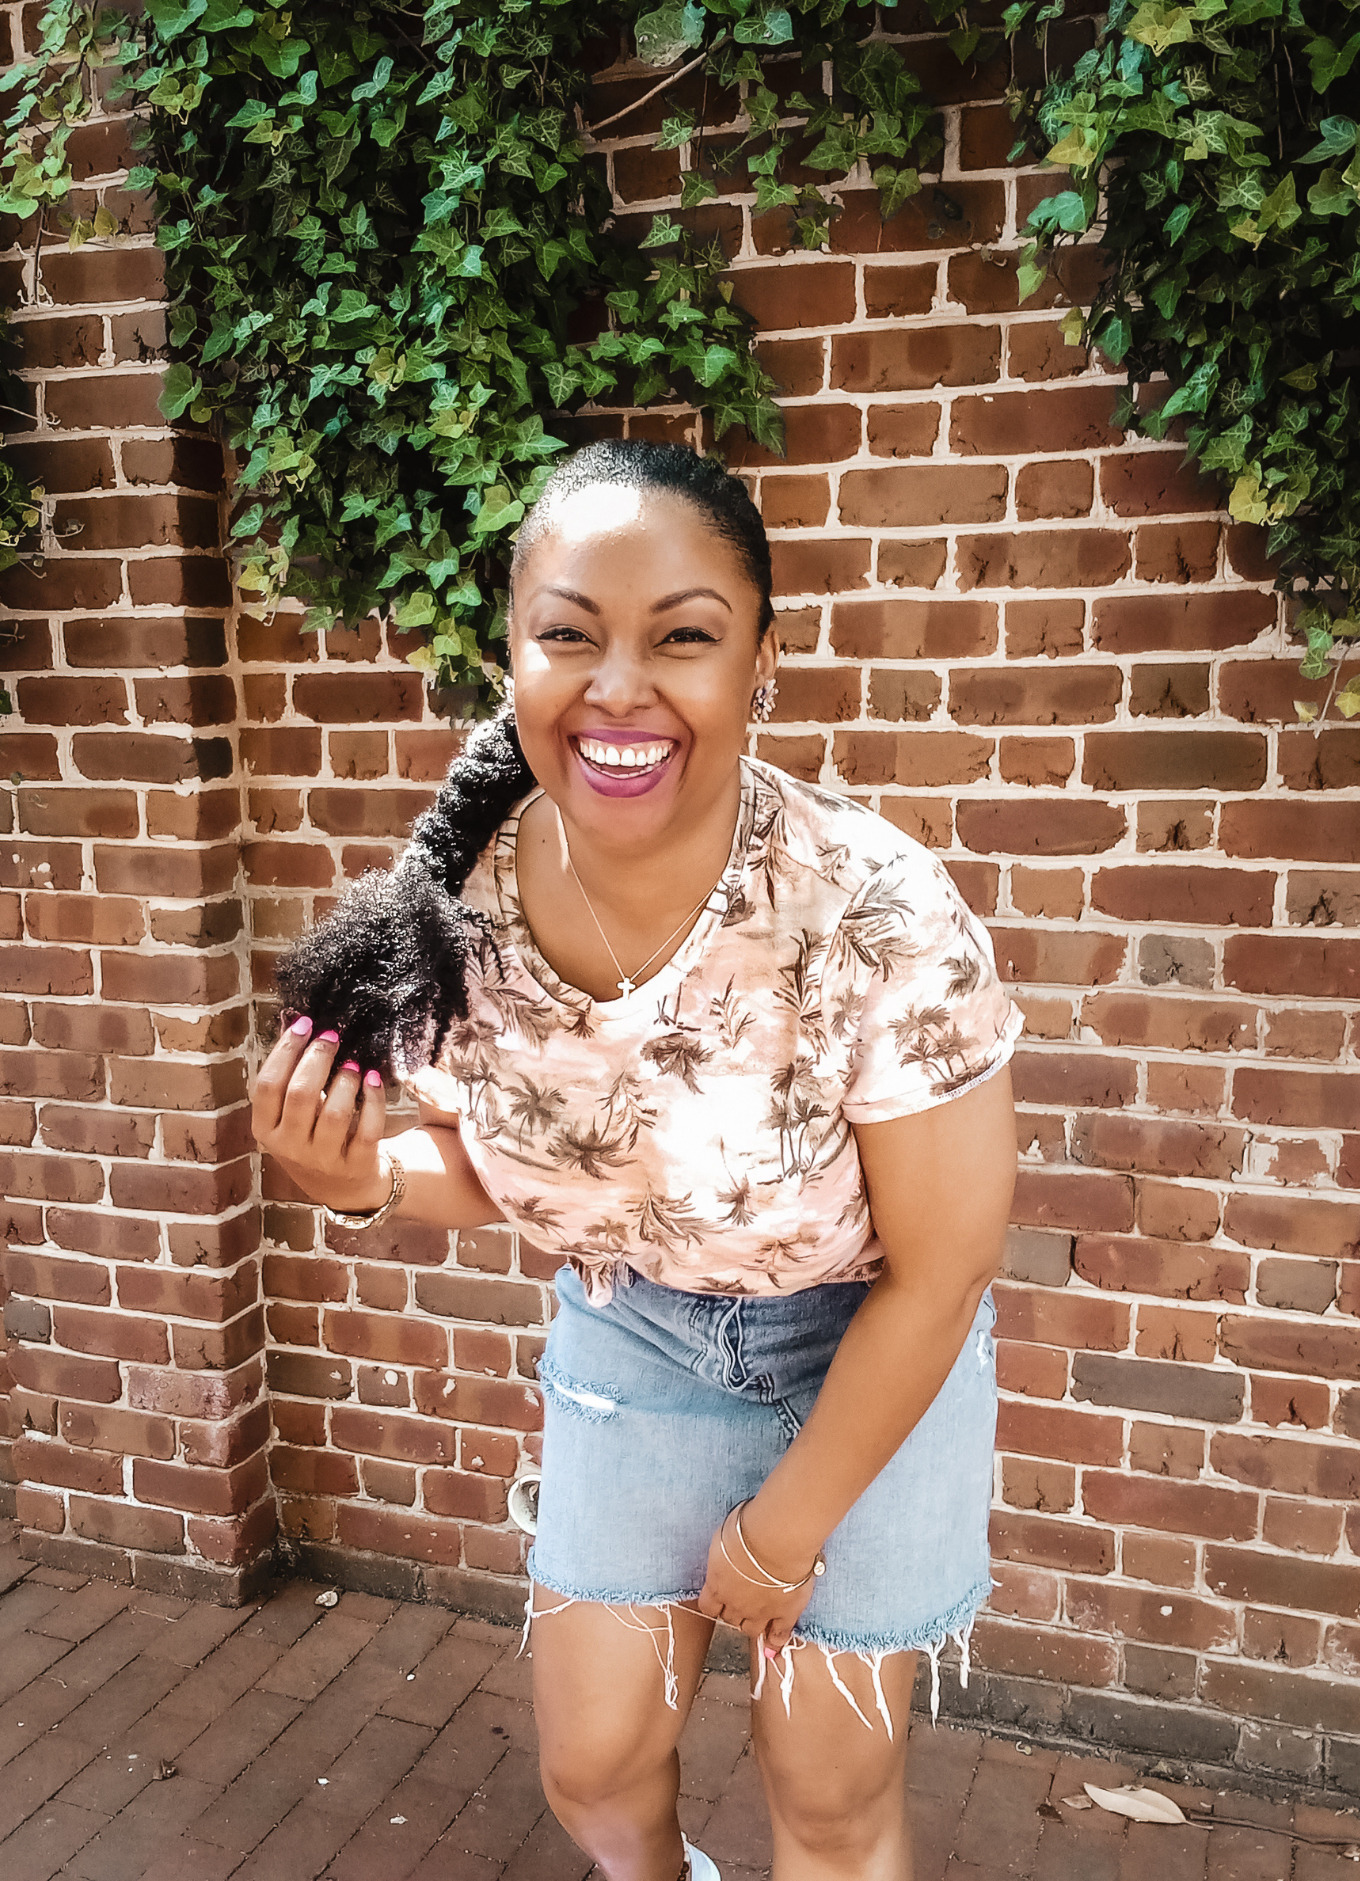 Washington DC-based blogger, Rogan Smith smiles and poses in front of a brick wall in Georgetown, DC